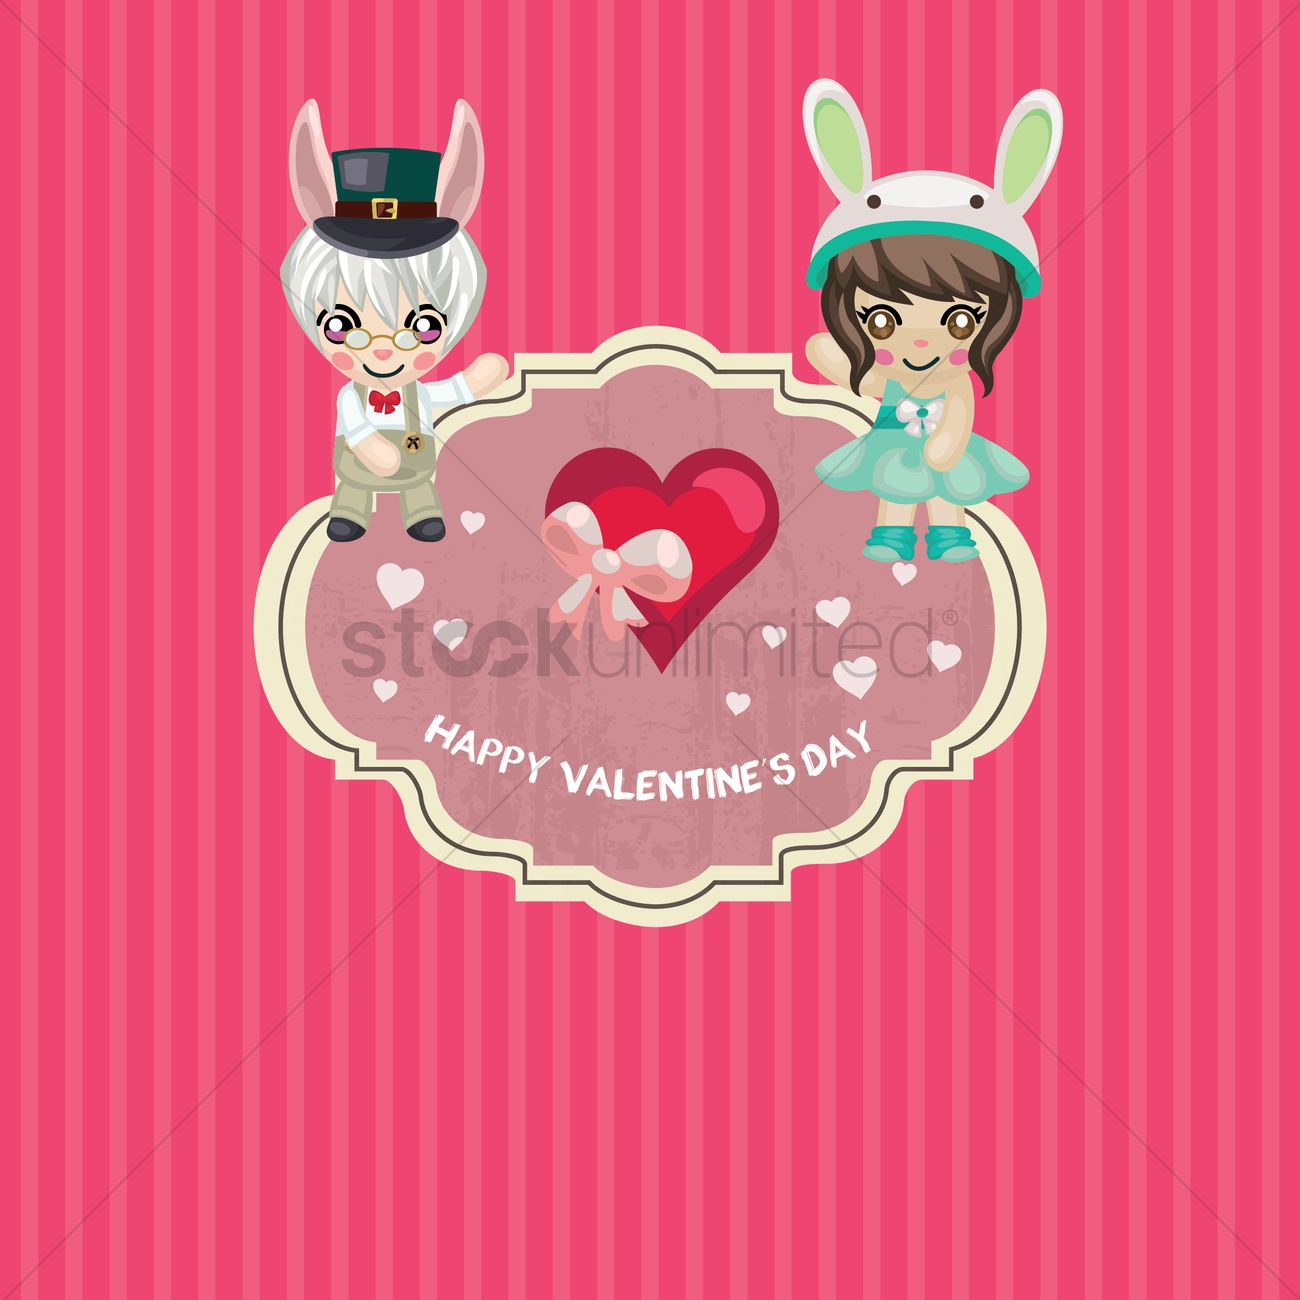 Happy Valentines Day Wallpaper Vector Graphic